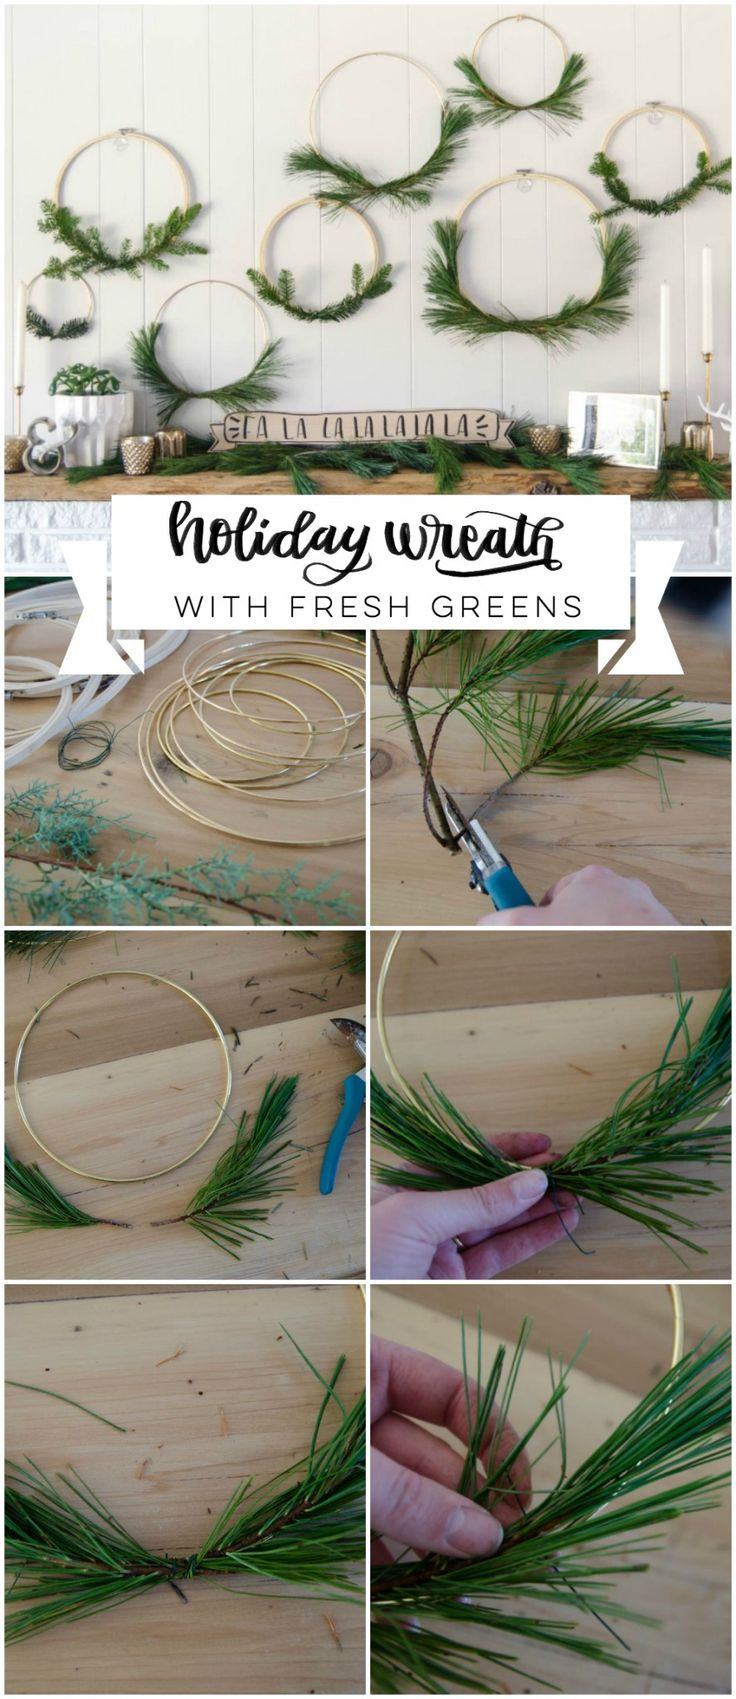 I LOVE these simple hoop wreaths with fresh greenery. The perfect amount of Chri...